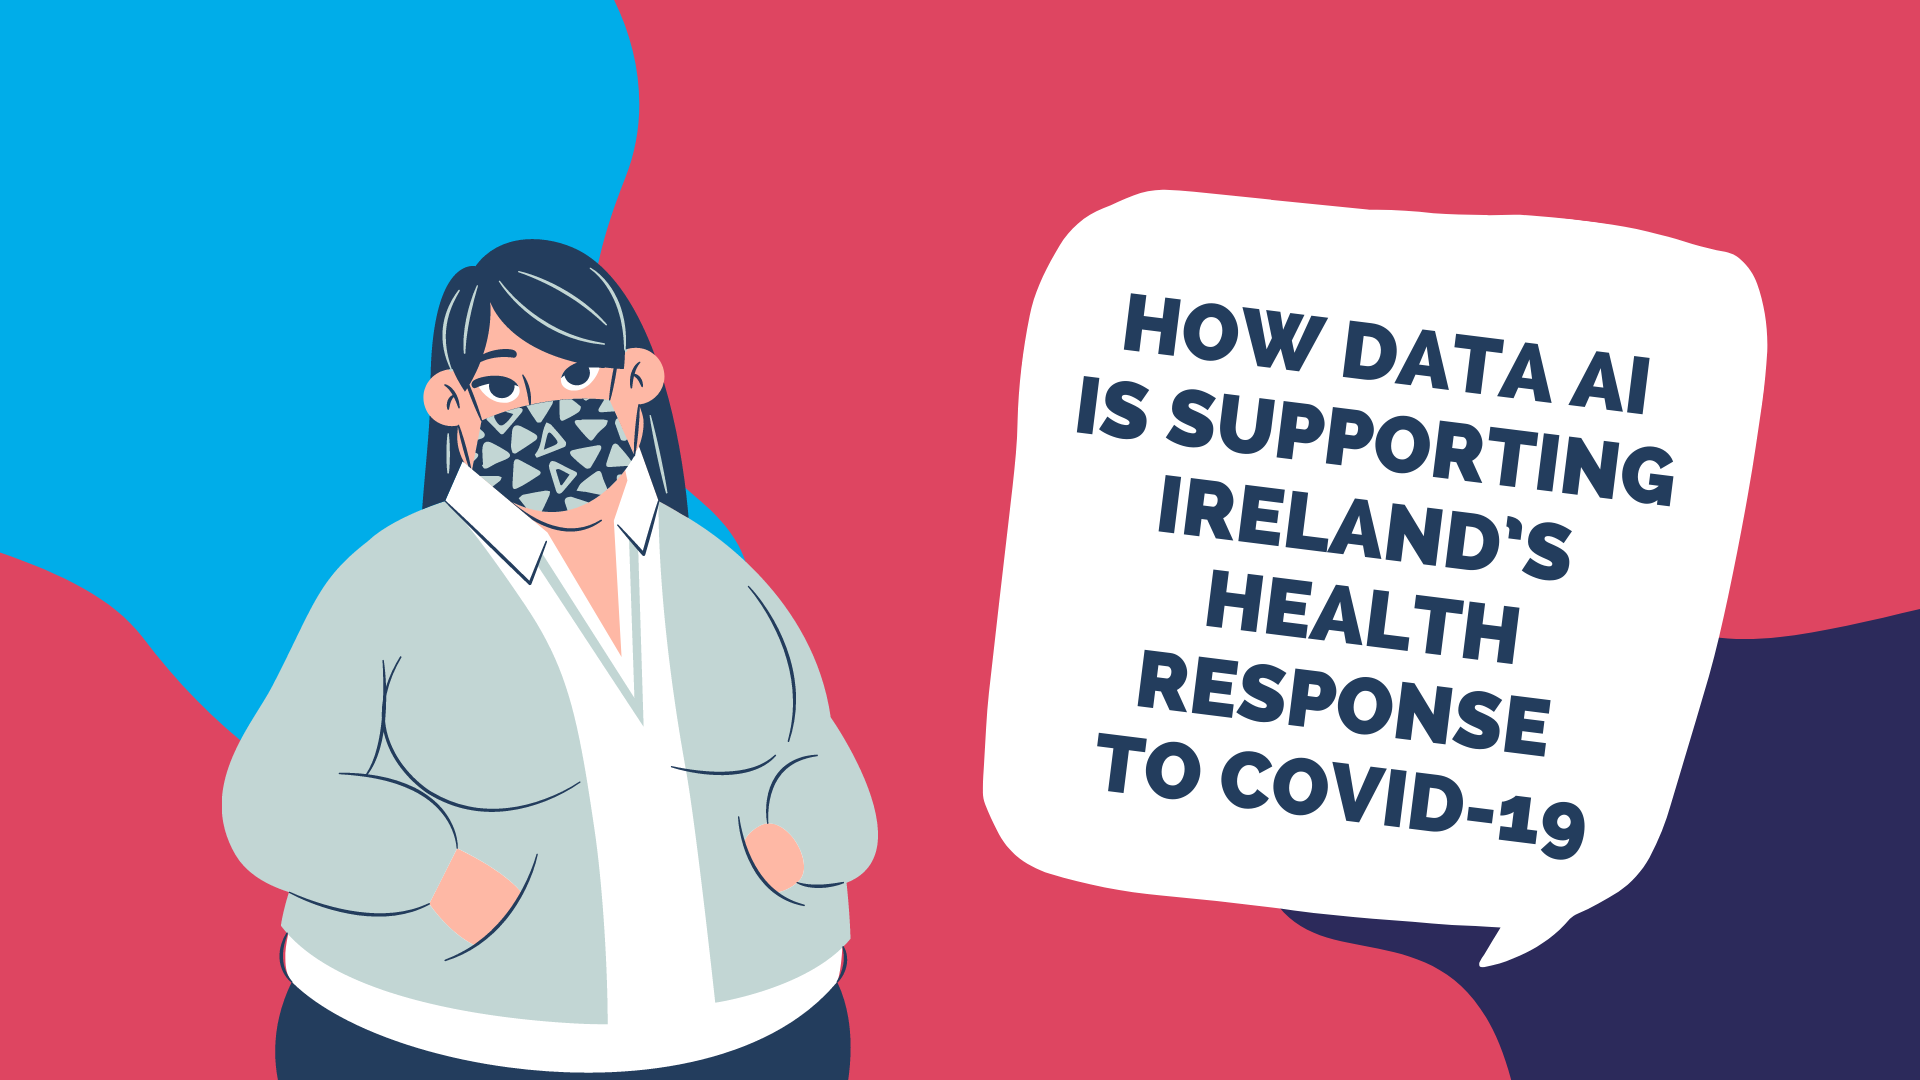 How Data AI Is Supporting Ireland's Health Response To Covid-19